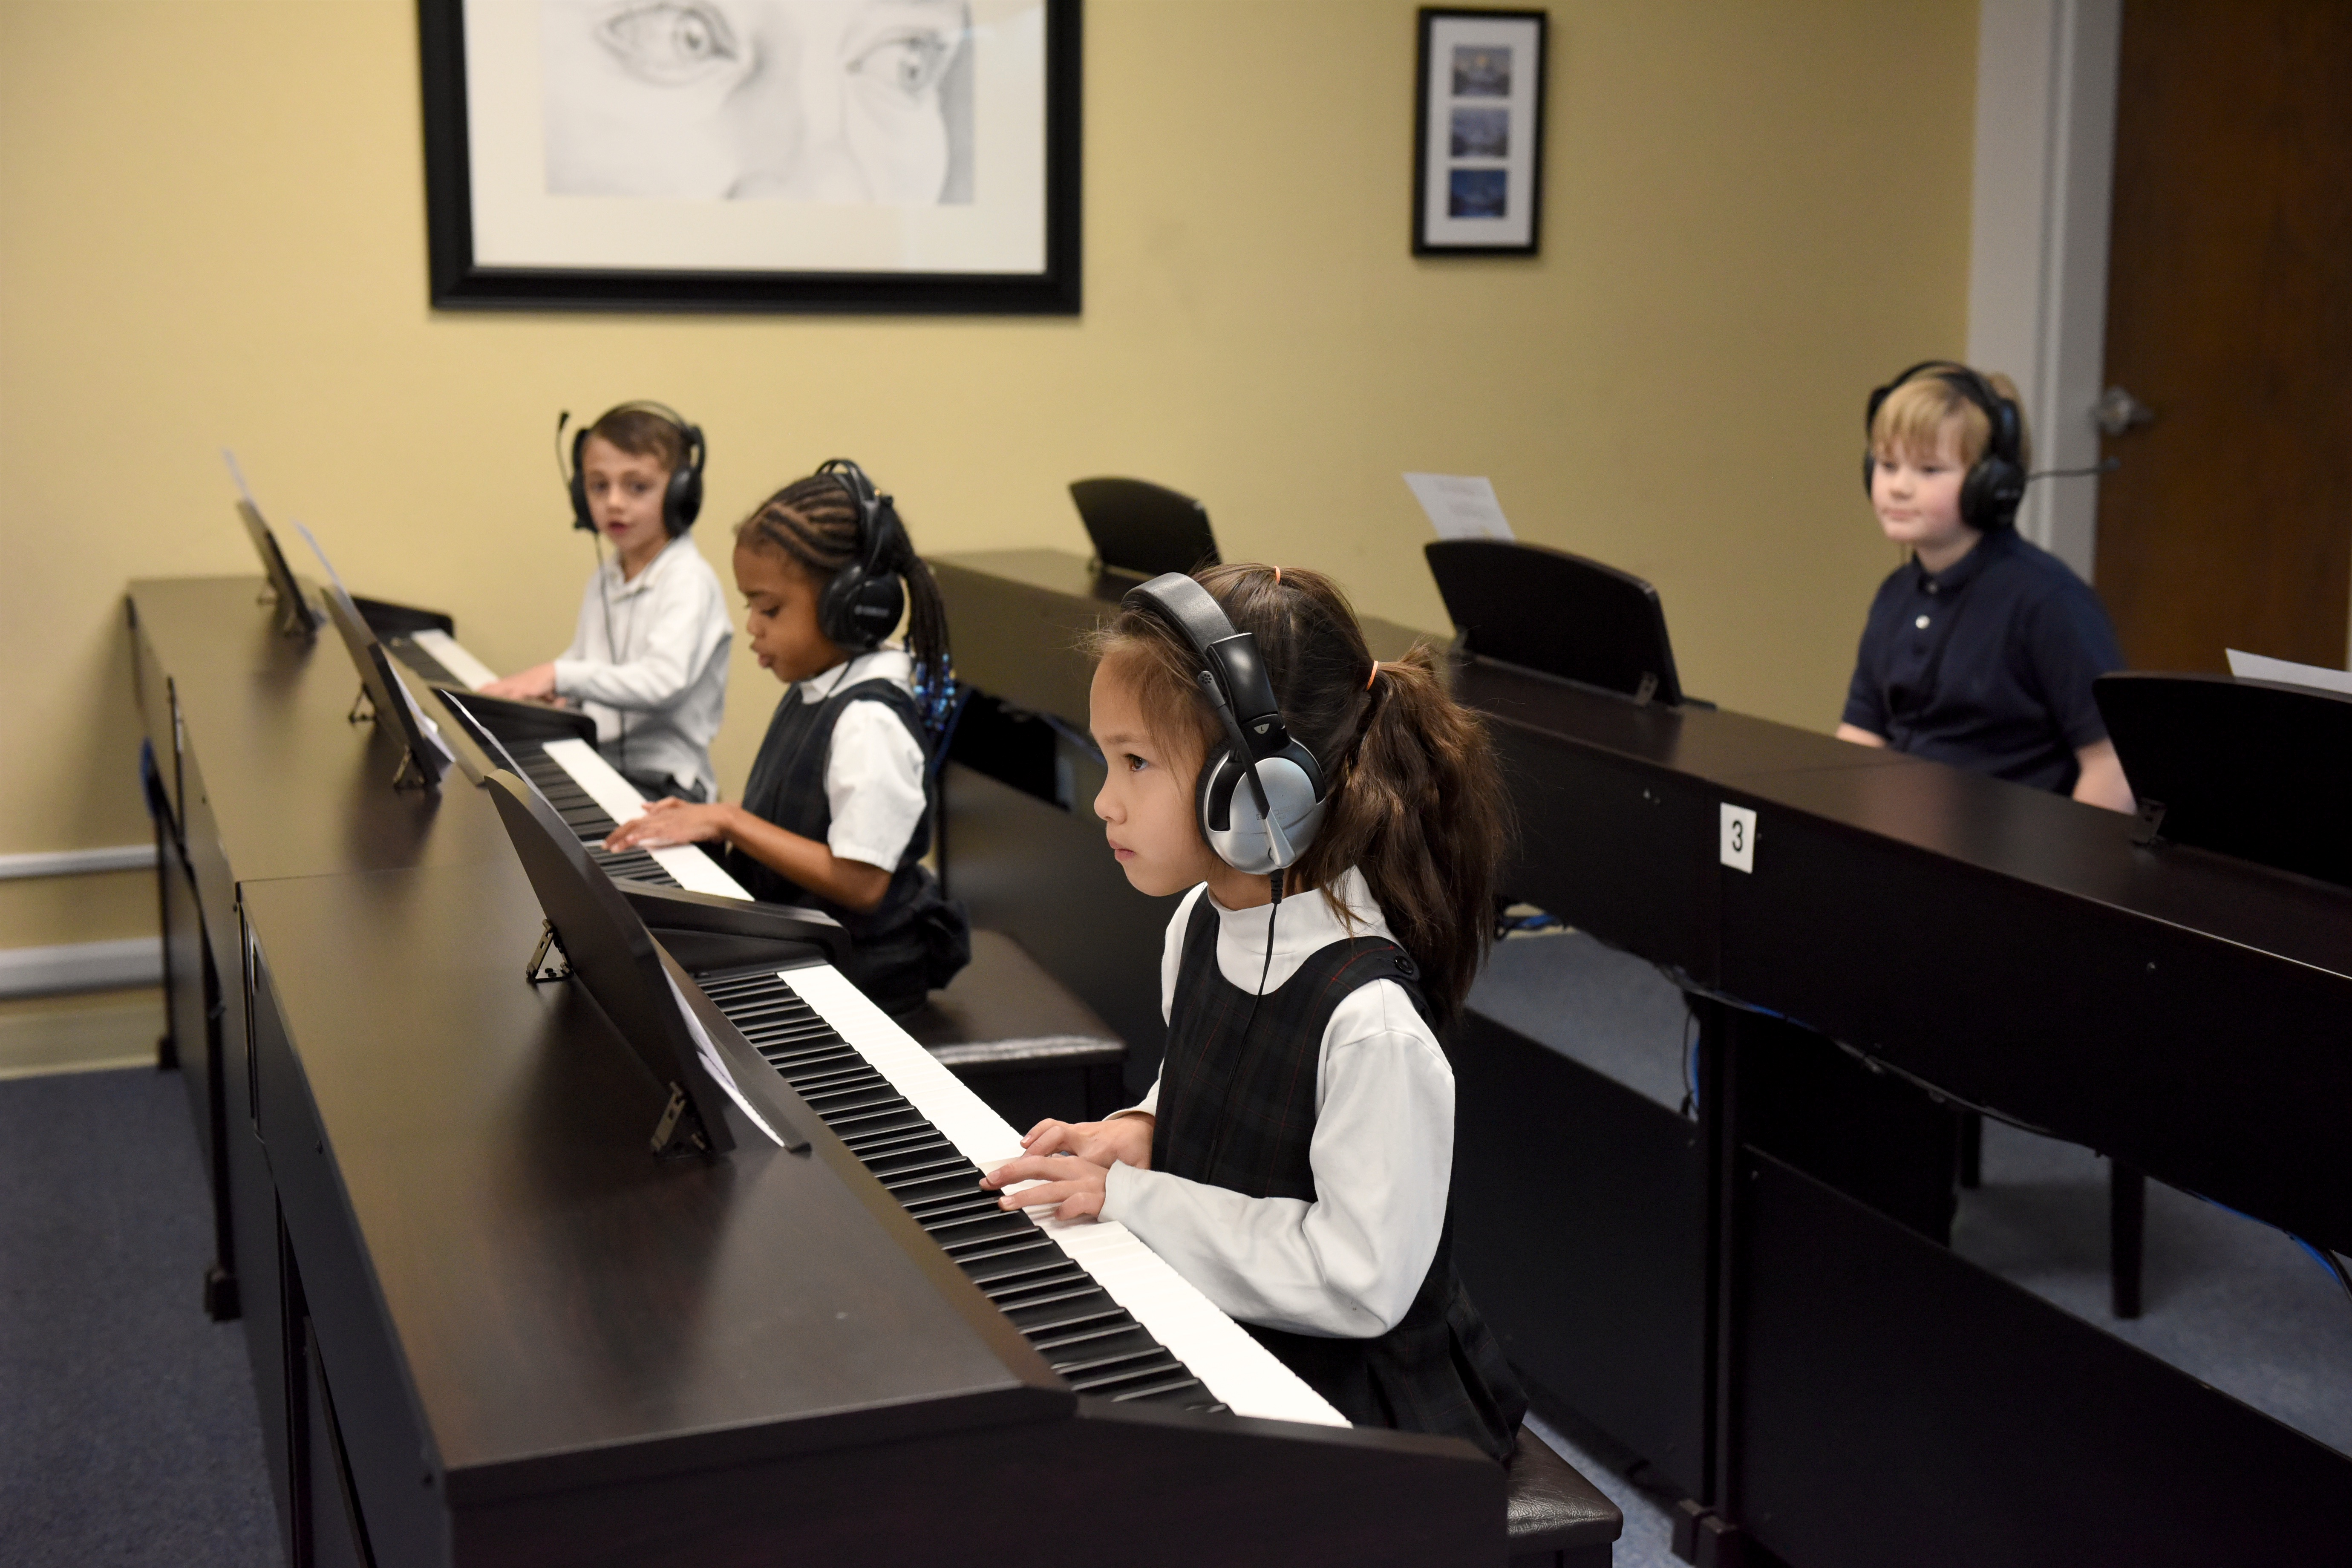 Students learn to read music on the piano with Waterford's music specialist.